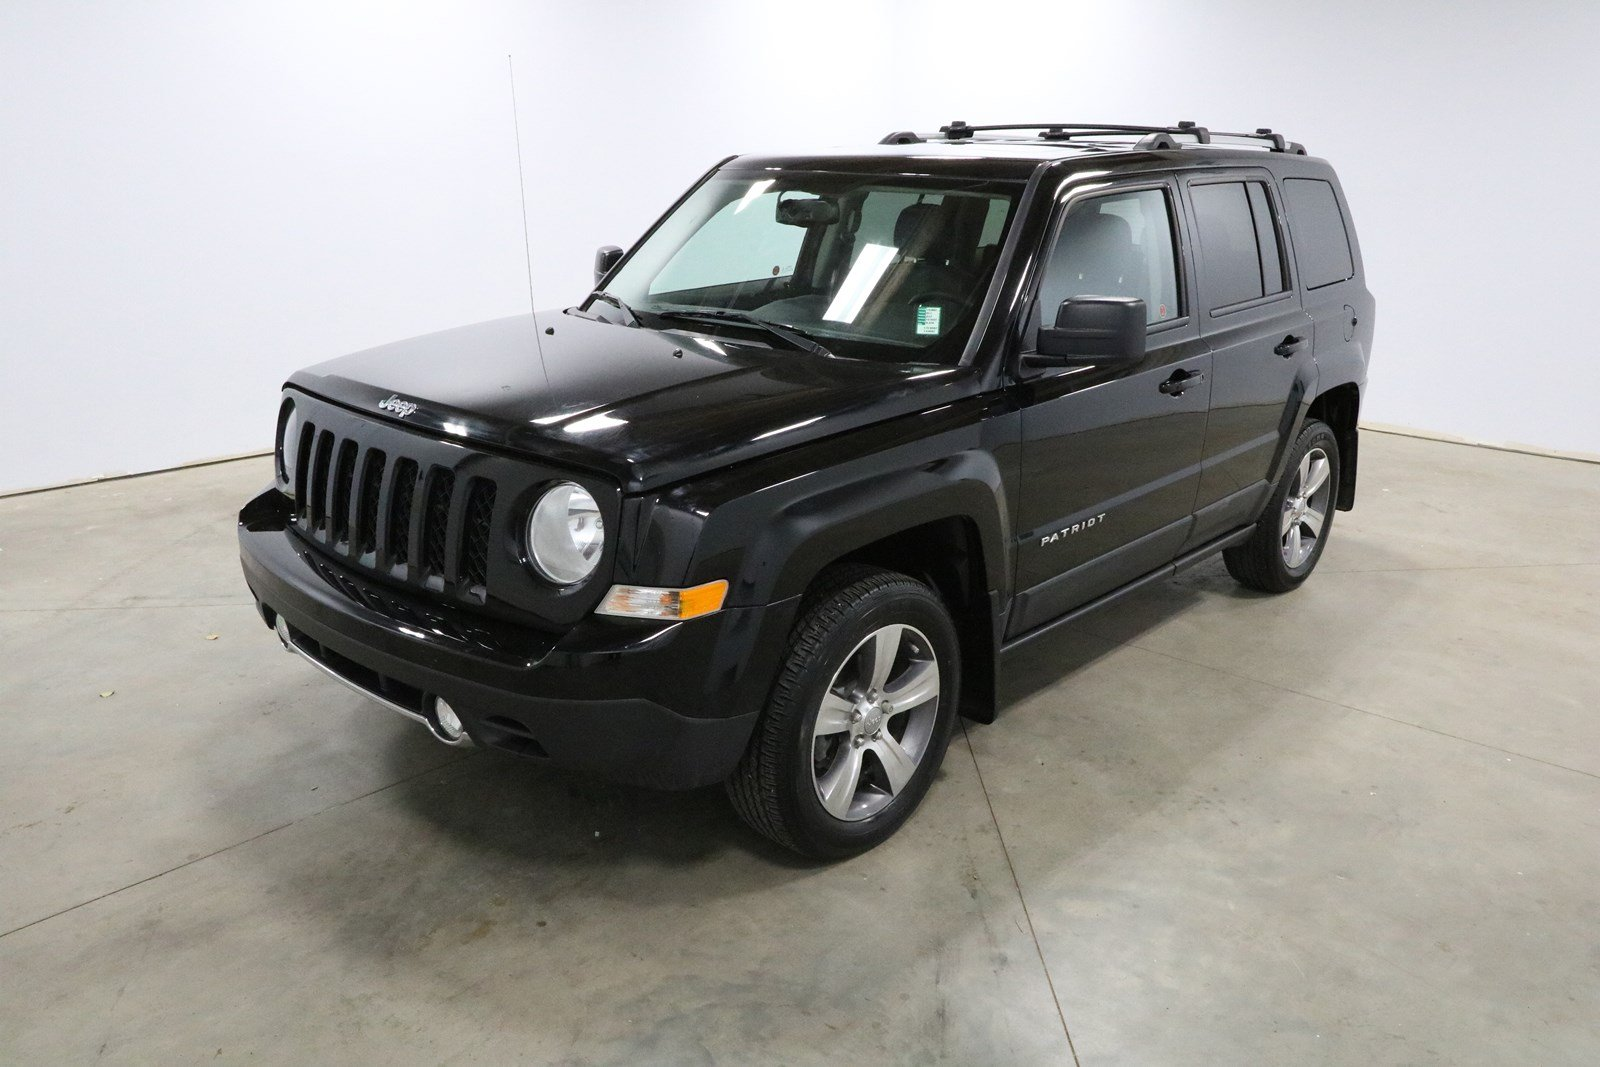 Pre-Owned 2017 Jeep Patriot 4WD 75TH ANNIVERSARY - Edmonton